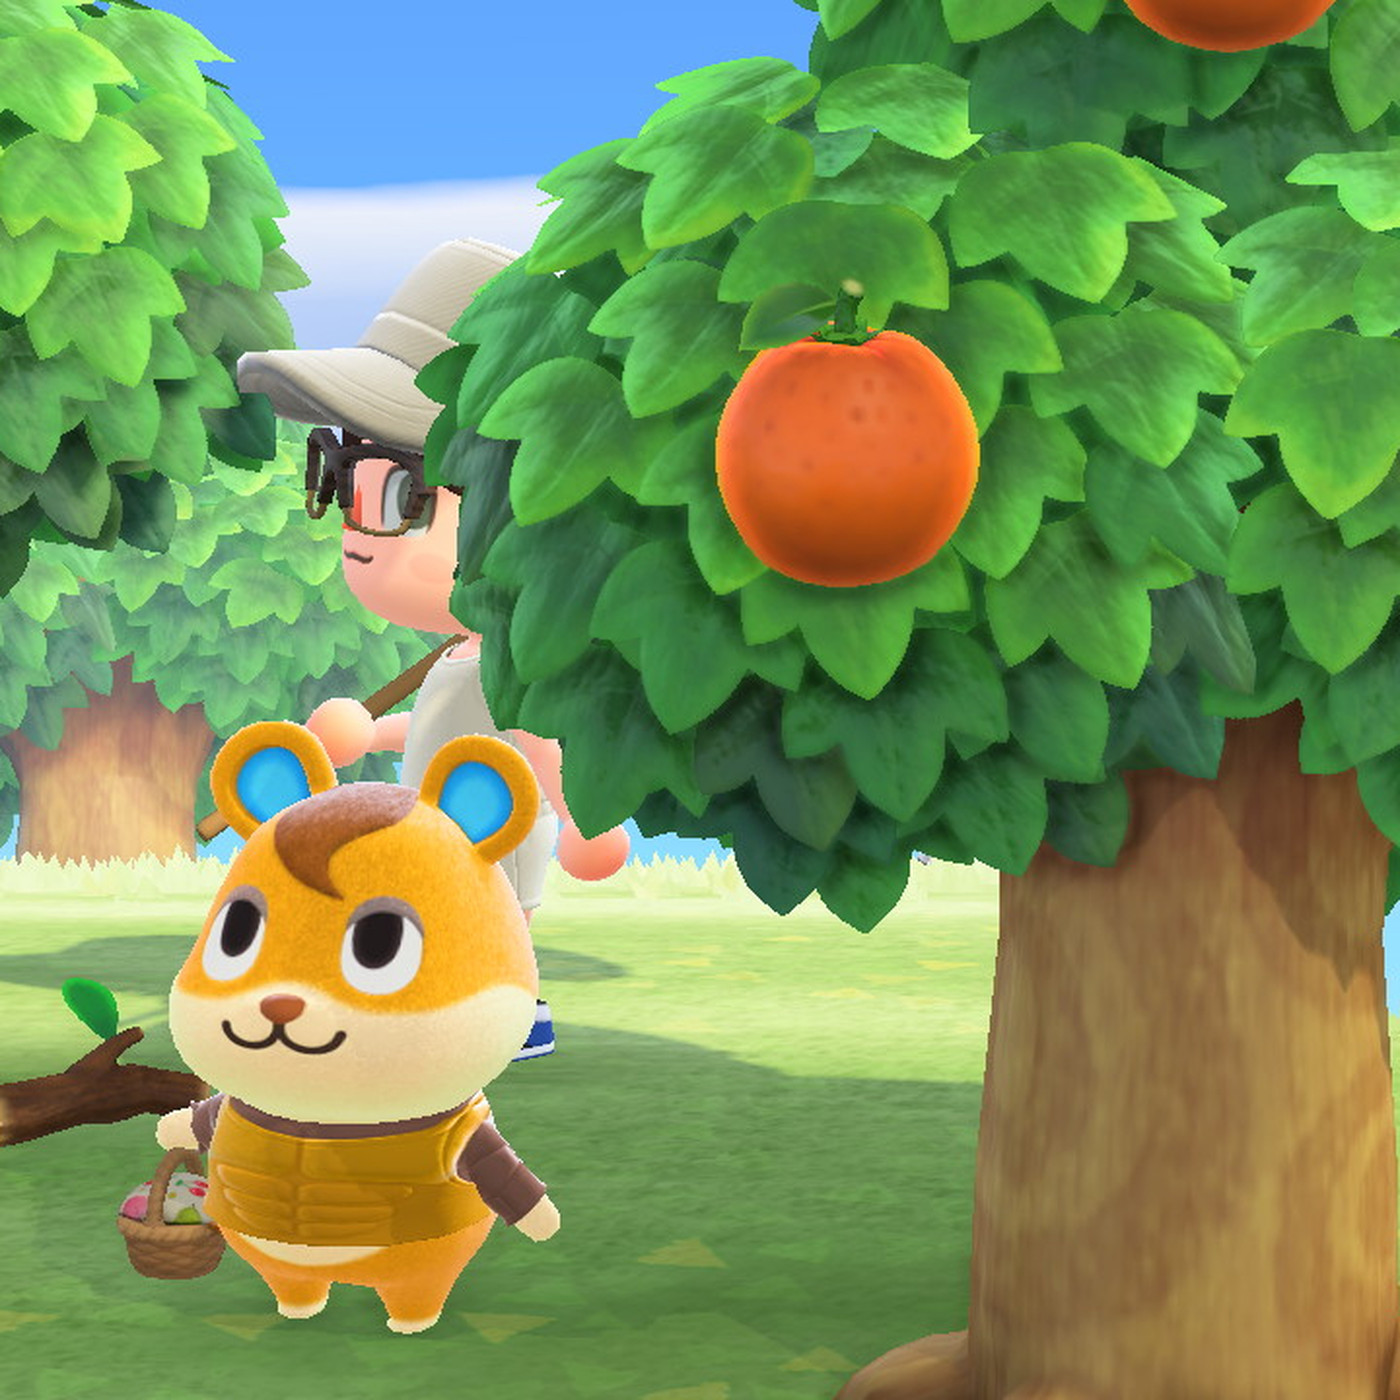 I Regret Giving My Animal Crossing New Horizons Villager A Muscle